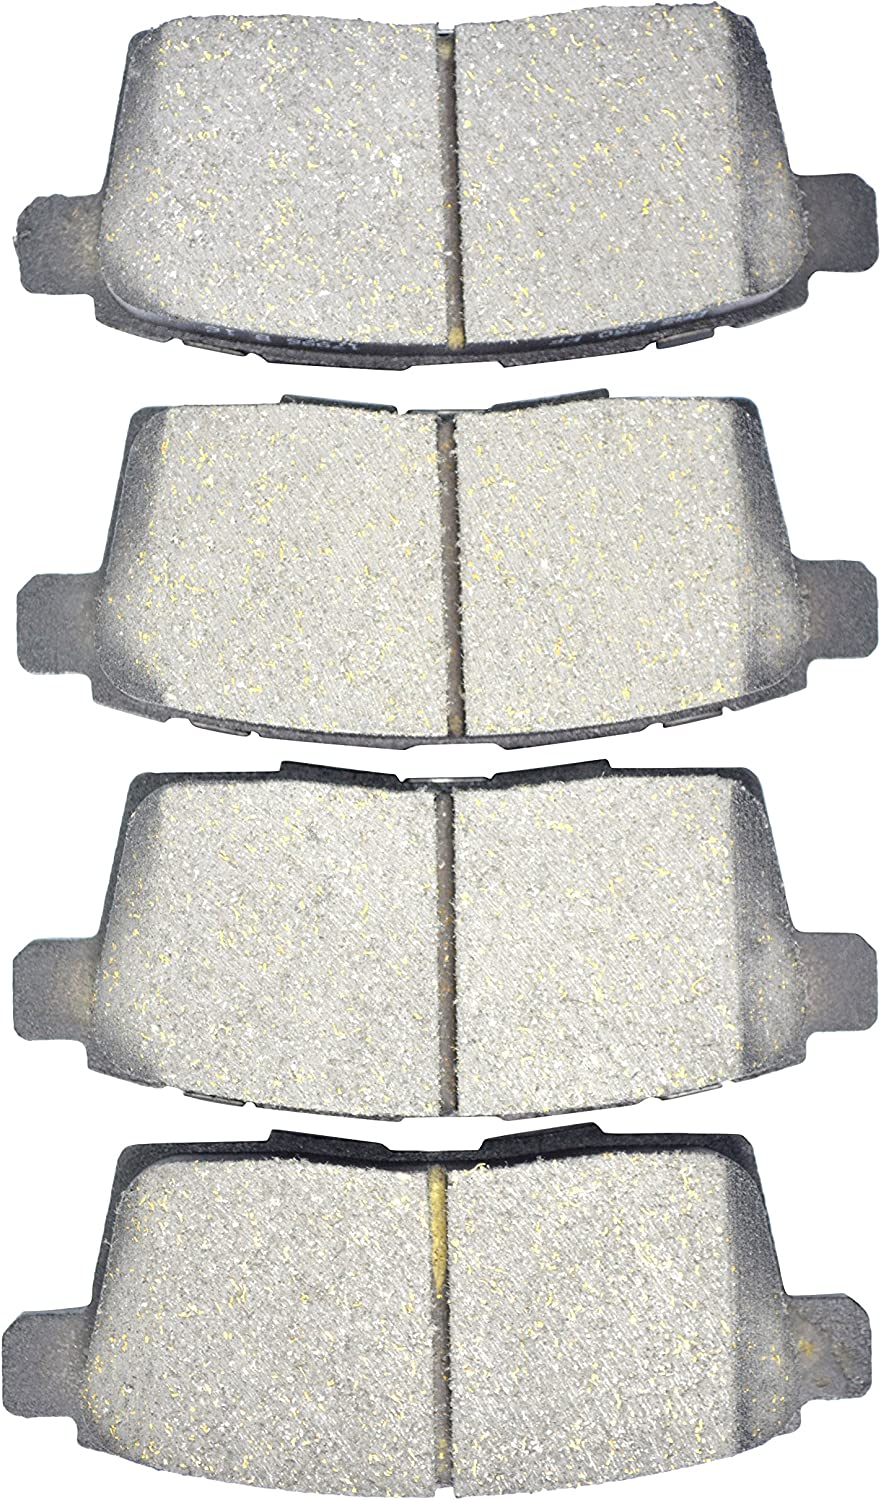 Dash4 MD1259 Semi-Metallic Brake Pad